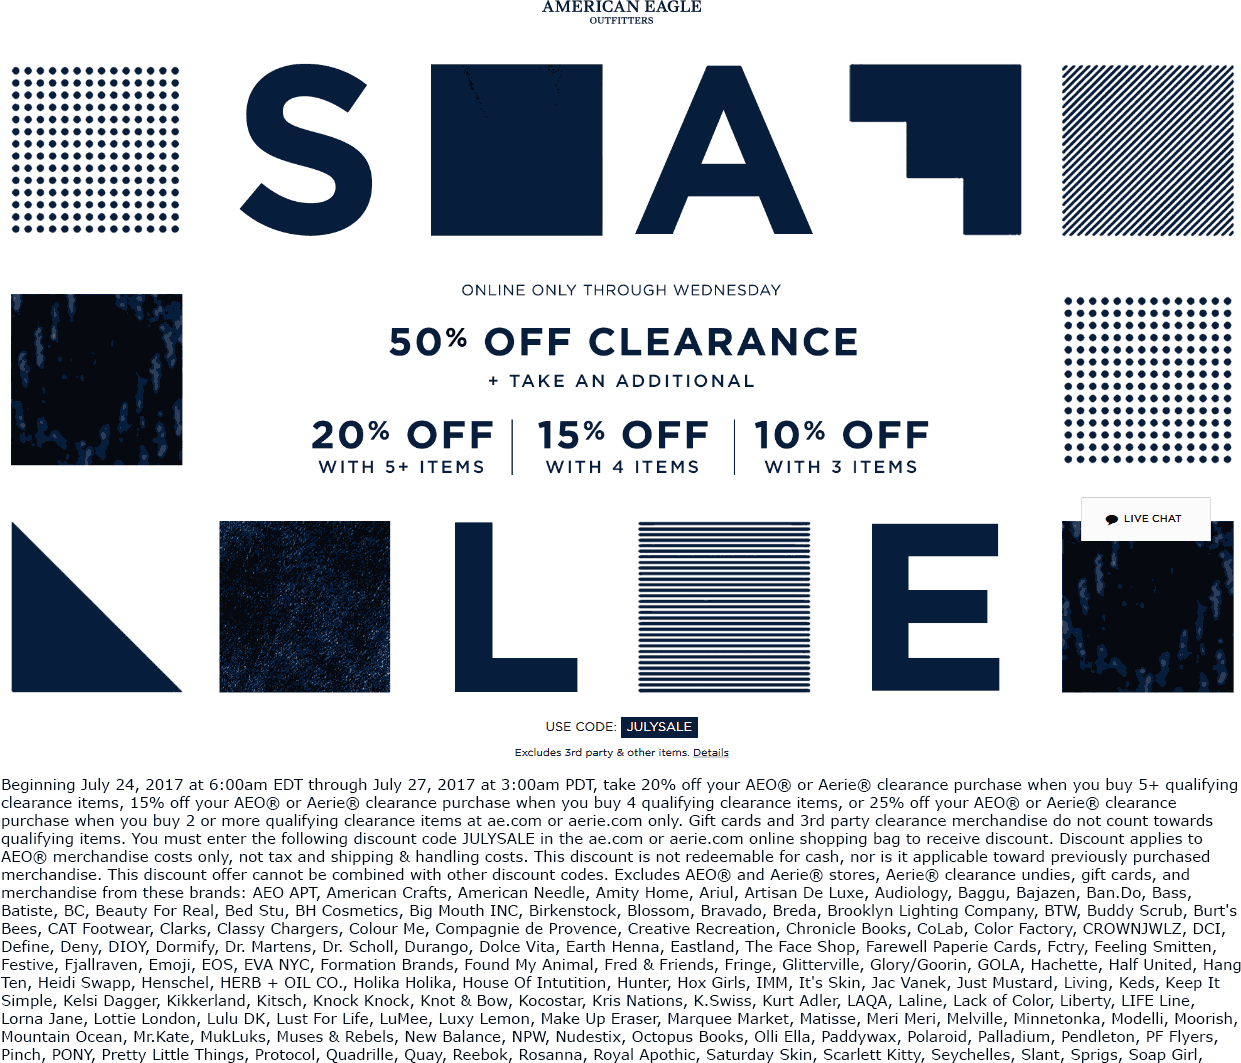 American Eagle Outfitters Coupon January 2018 10-20% off 3+ items, extra 50% off clearance online at American Eagle Outfitters